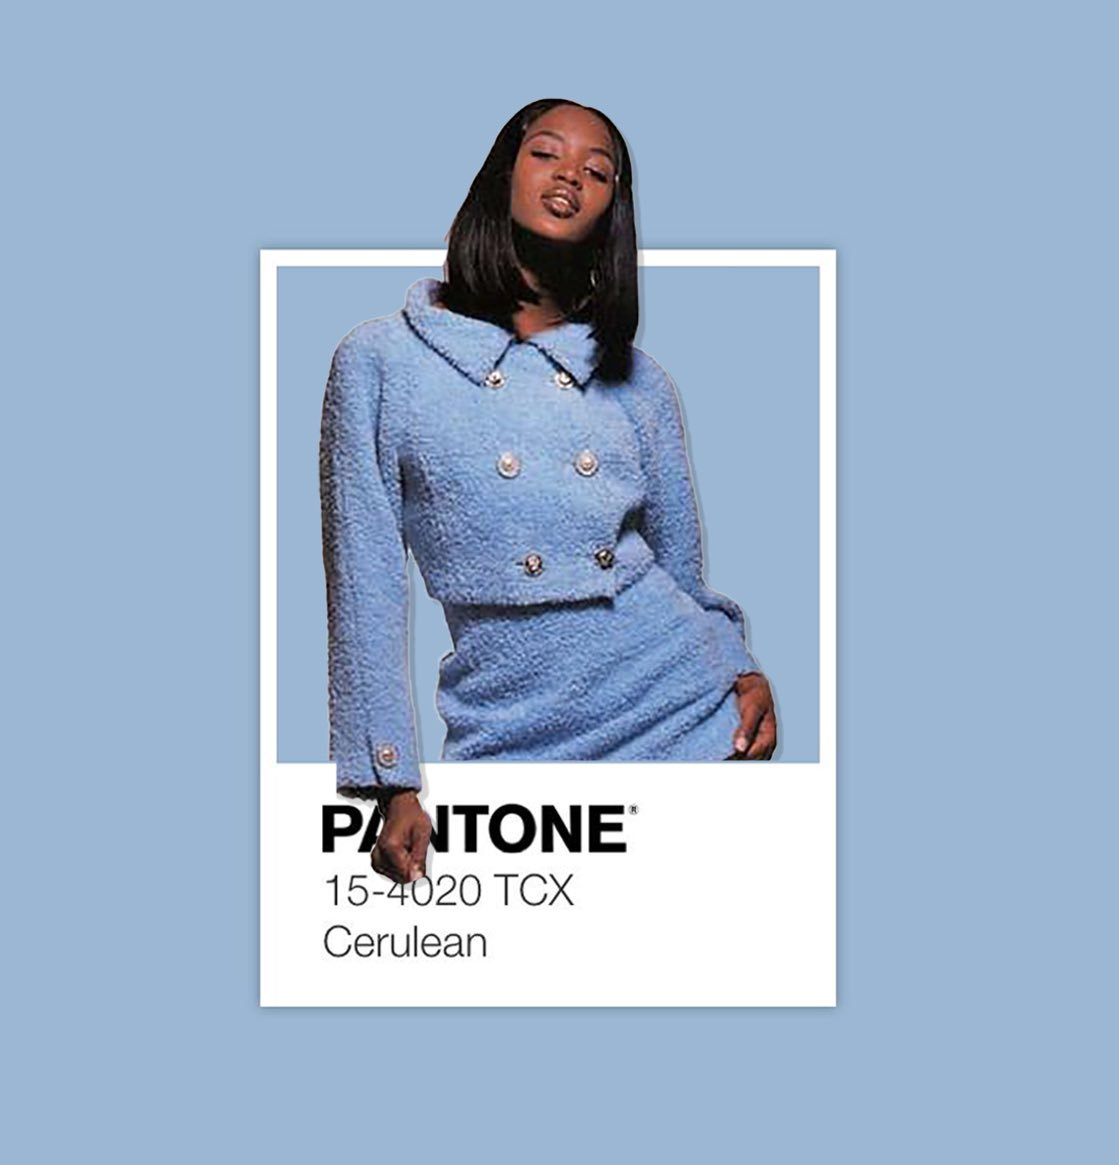 Naomi Campbell as Pantone swatches. A concept.